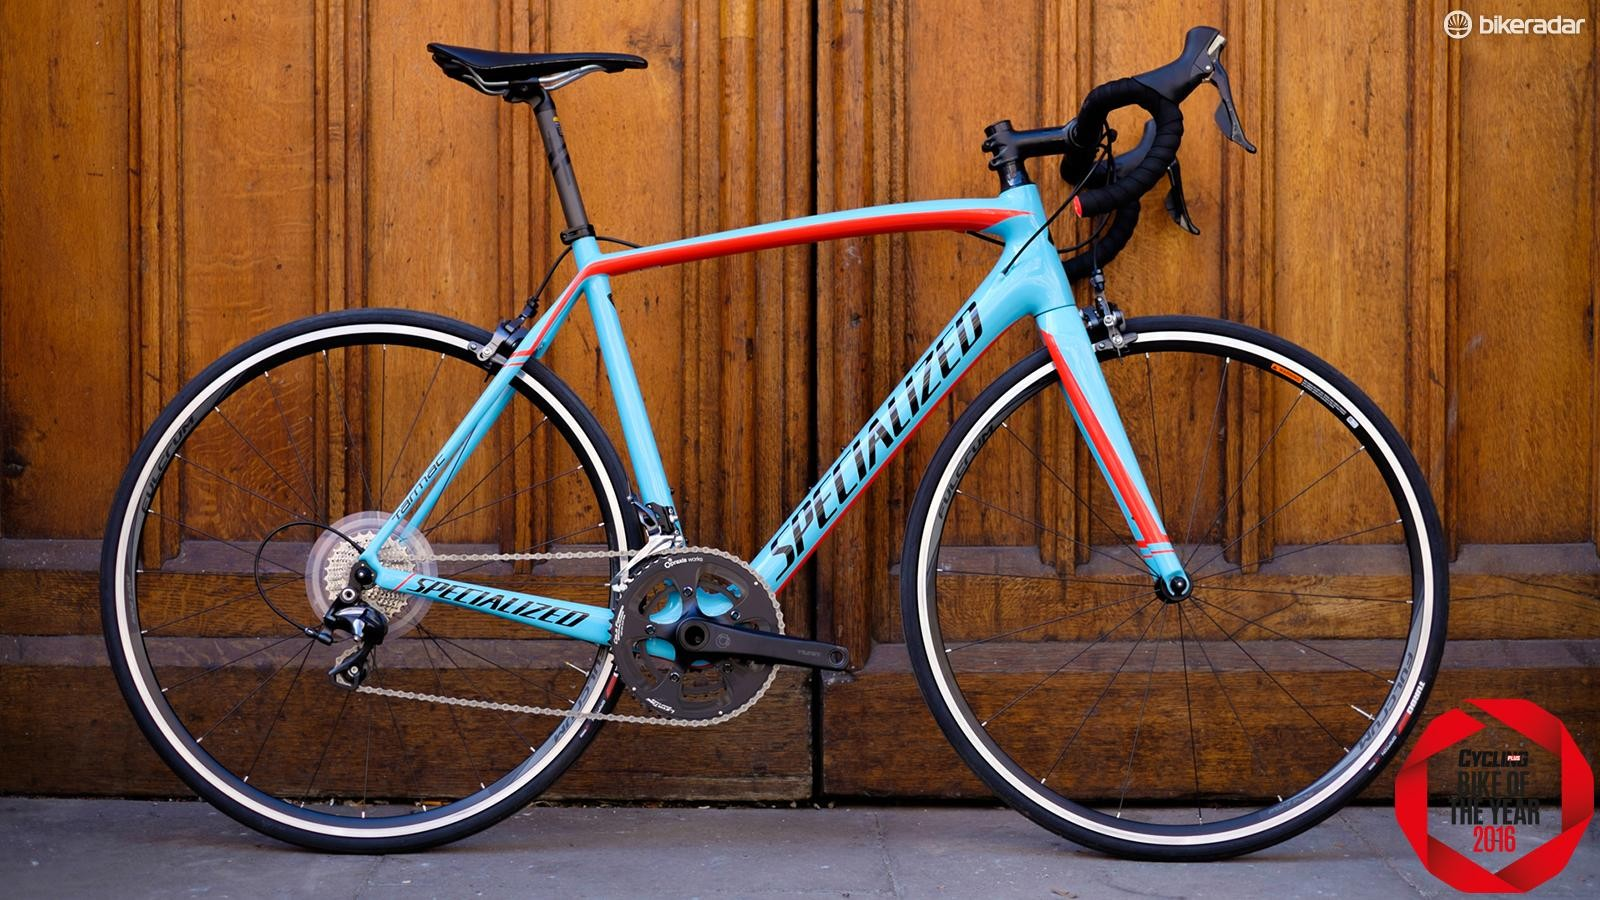 The Specialized Tarmac Comp's striking paint job is apparently designed to age naturally